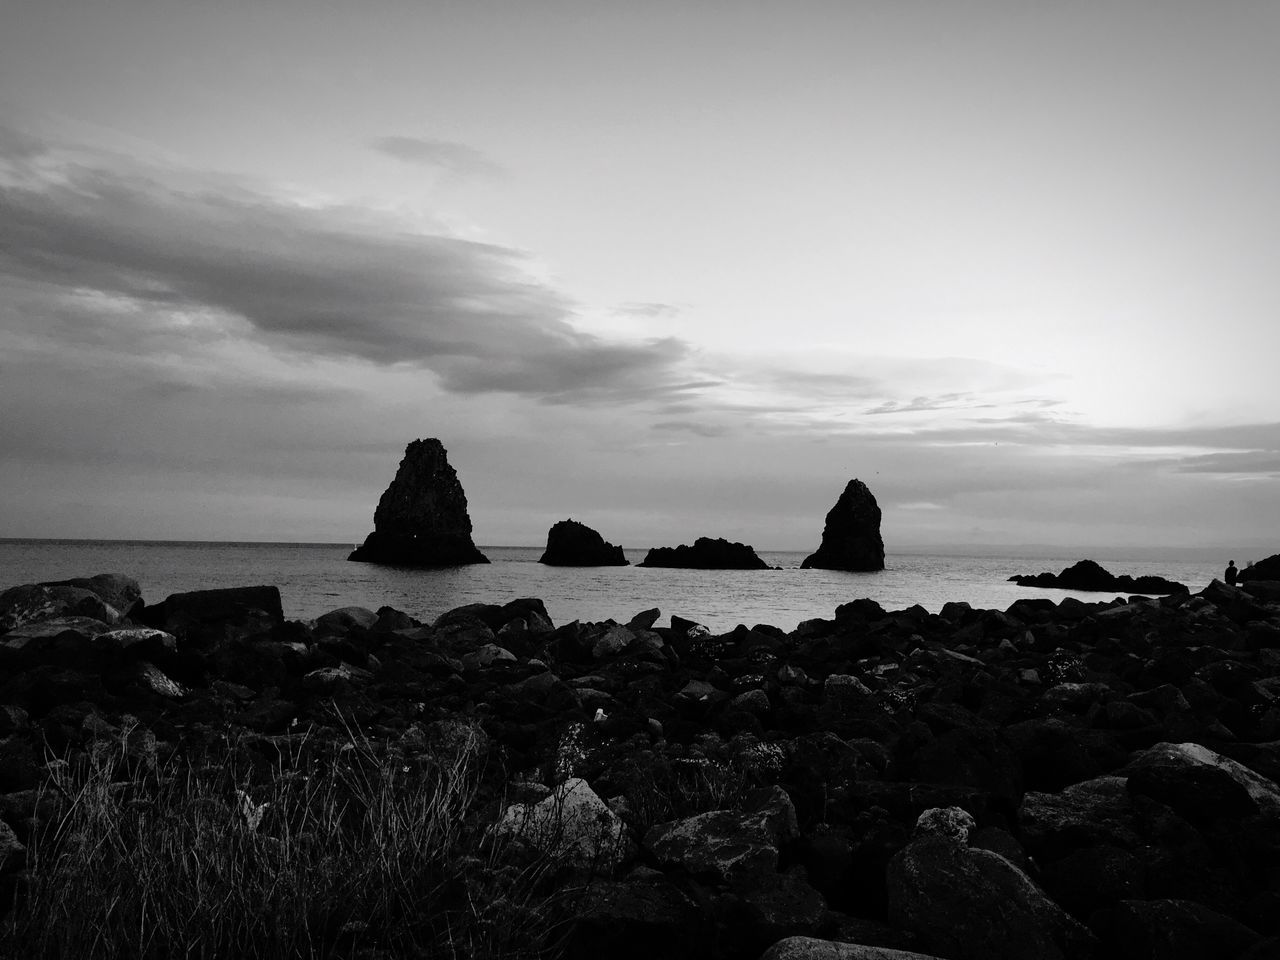 sea, sky, rock - object, nature, horizon over water, rock formation, tranquility, rock, water, beauty in nature, no people, scenics, outdoors, cliff, day